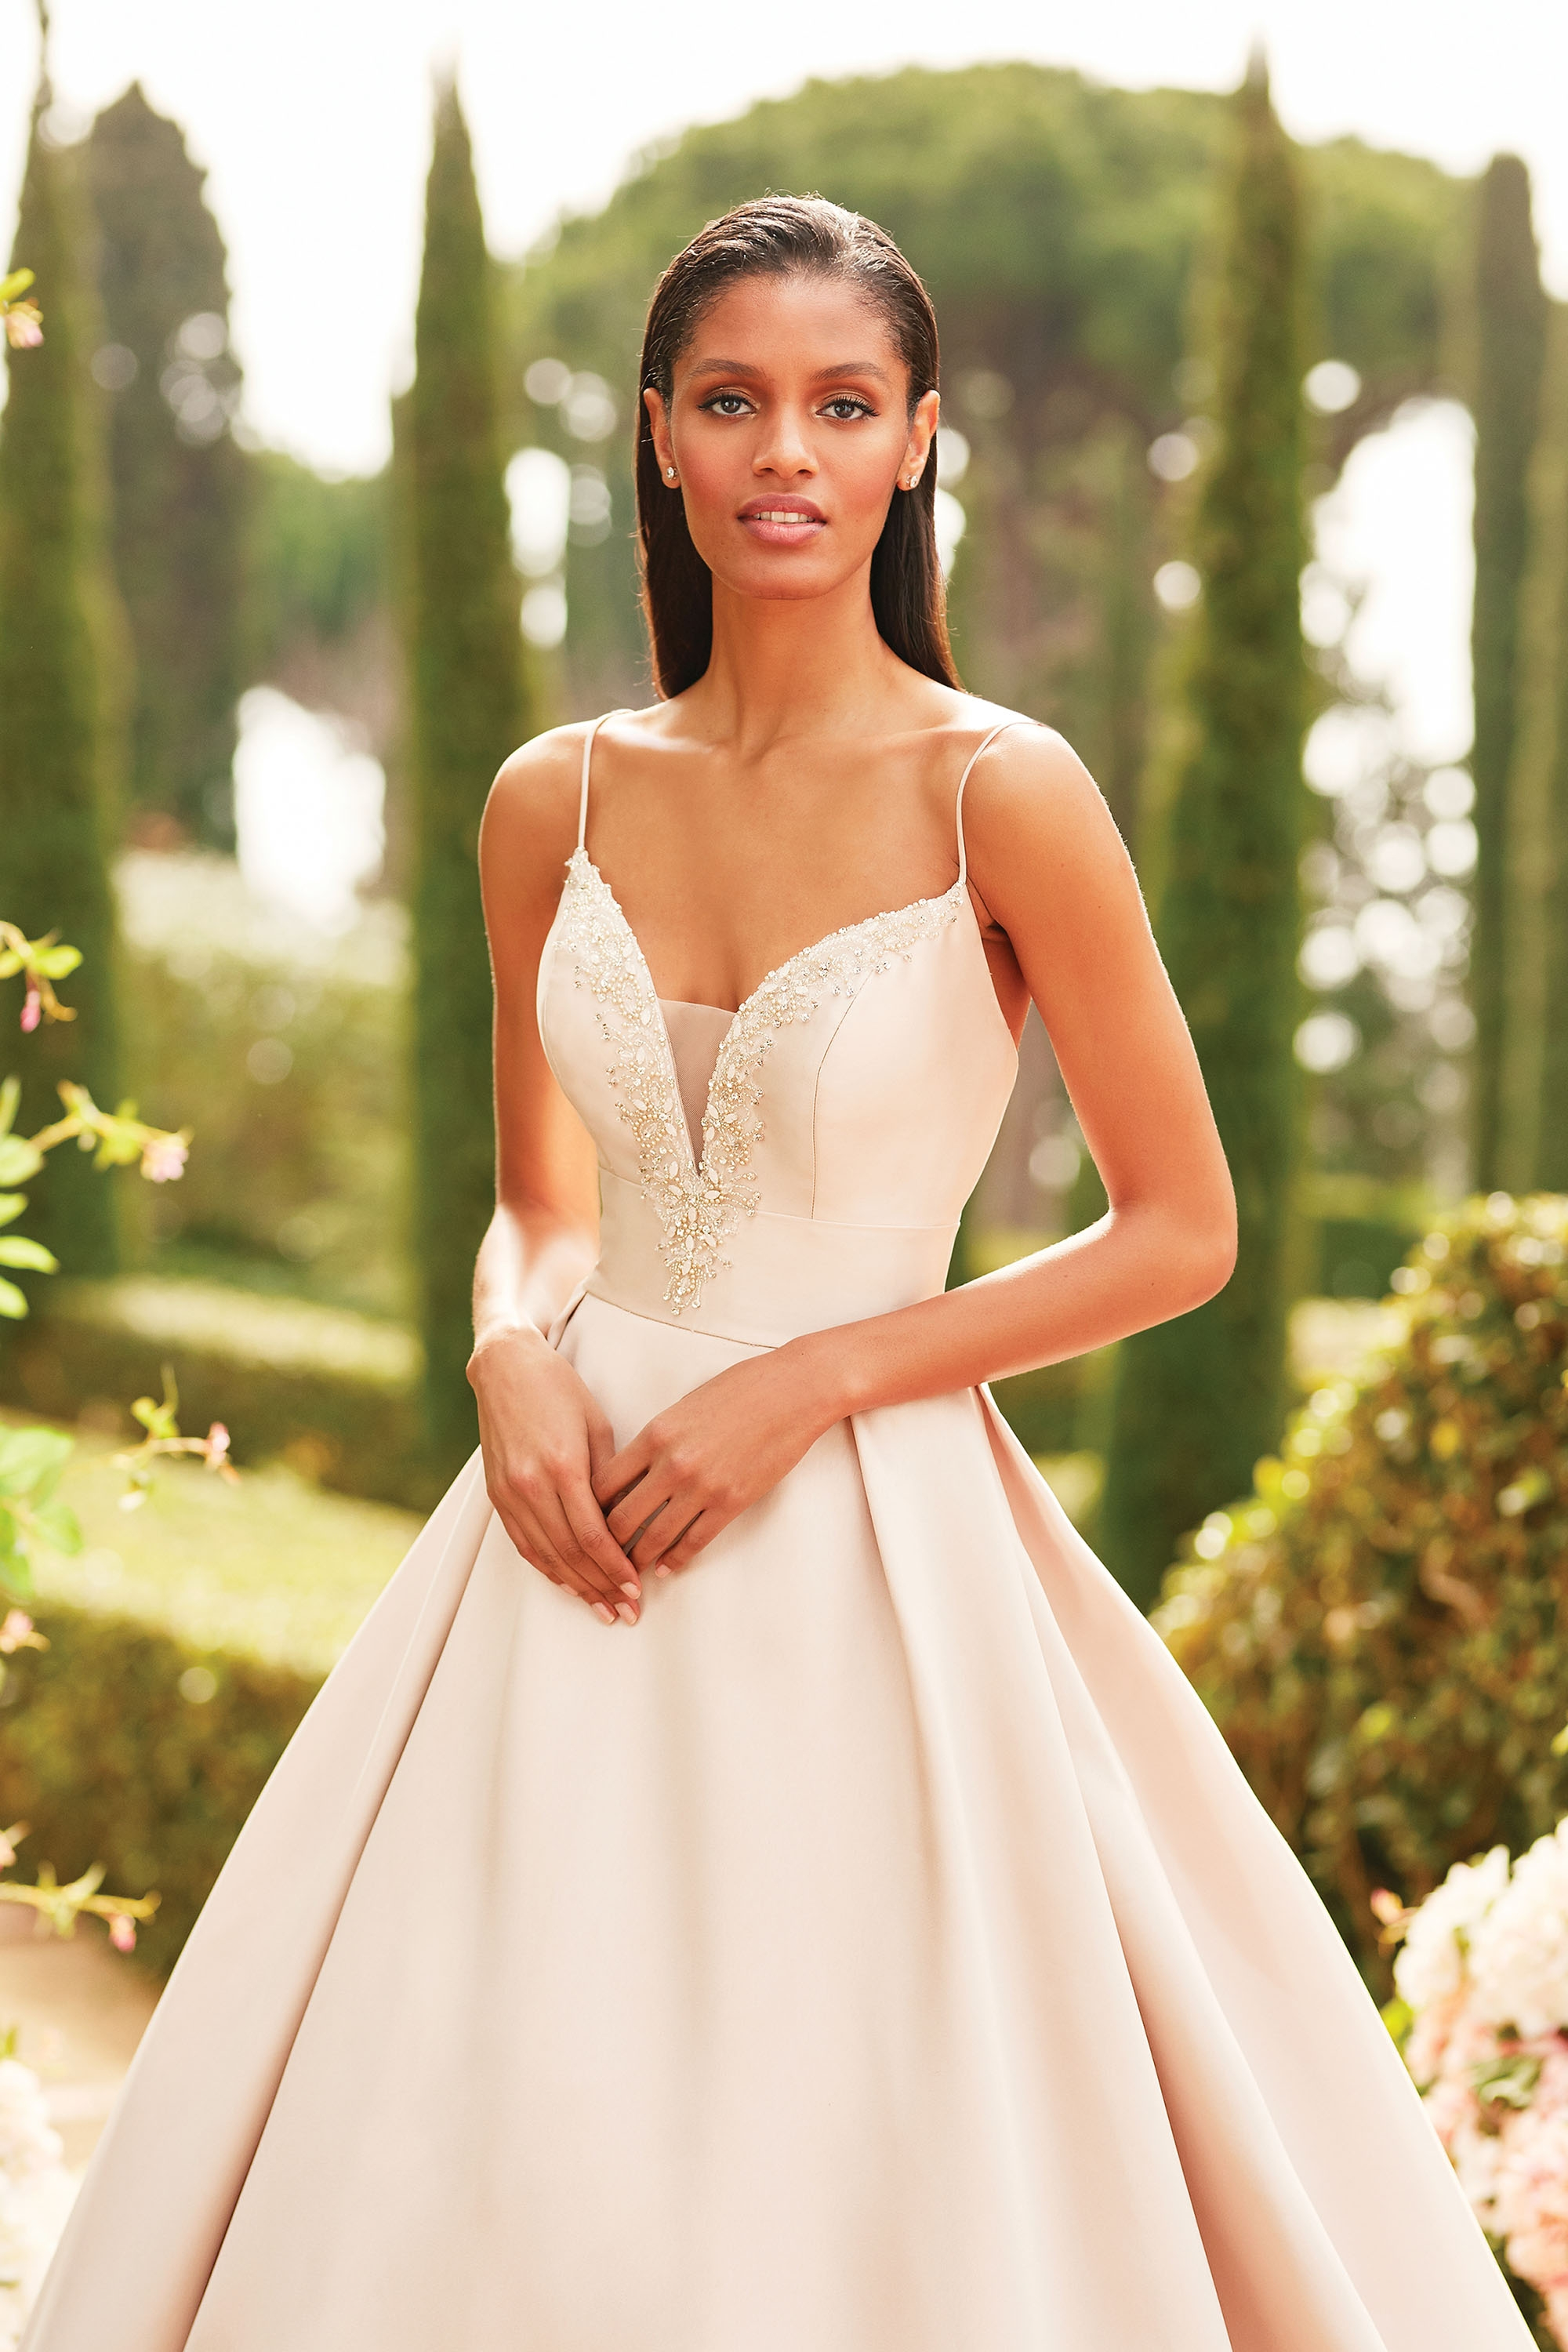 44186 - Mikado ball gown with beaded plunge neckline, modernly royal